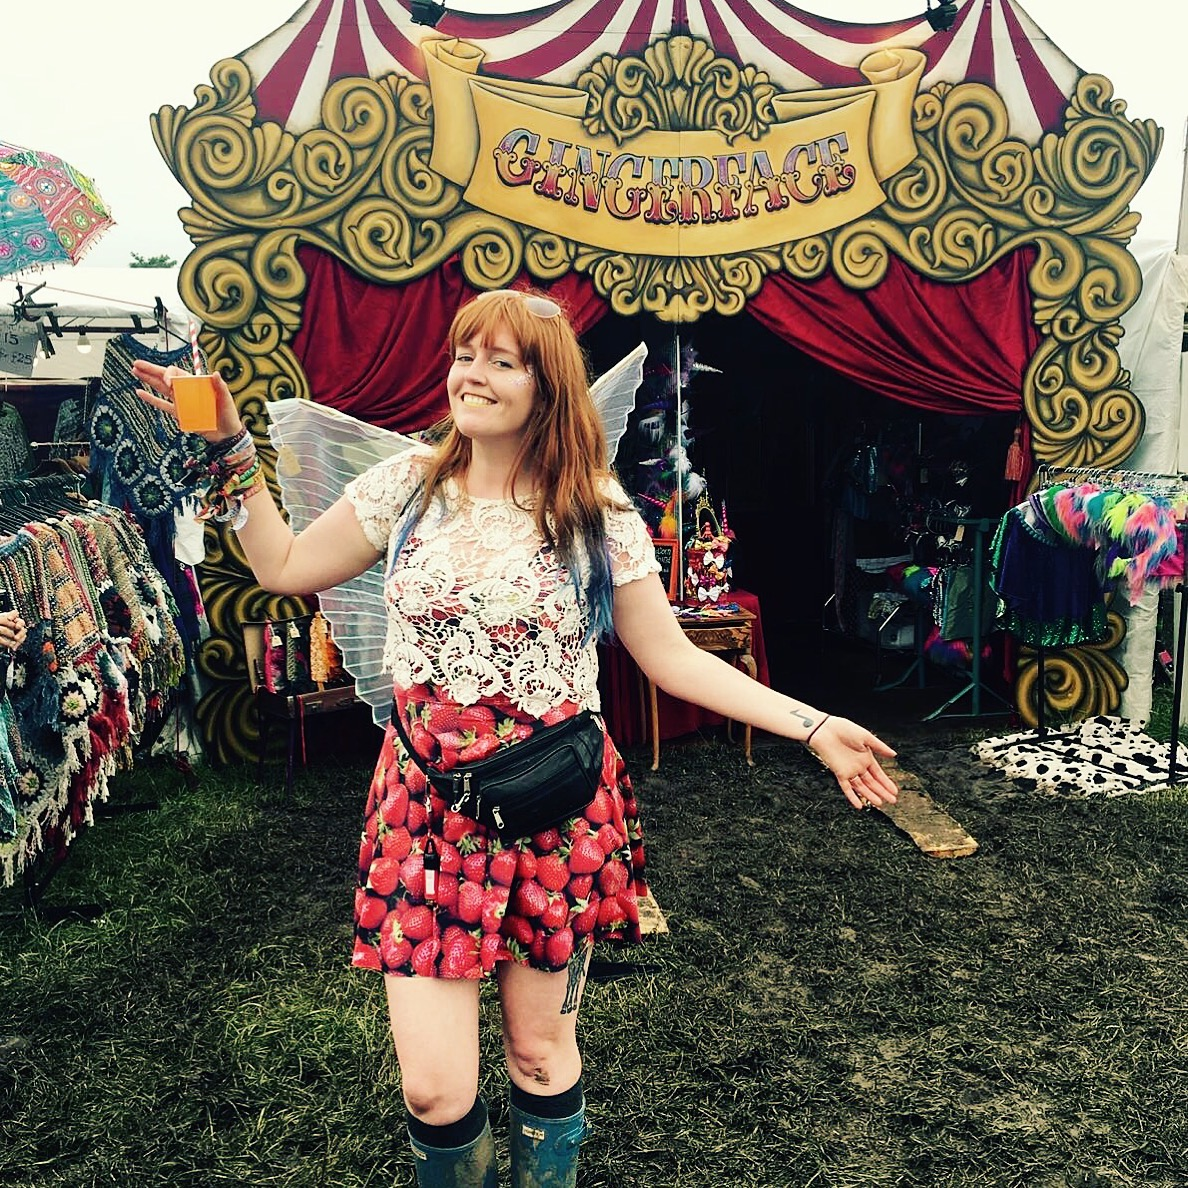 Jessi at Glastonbury festival in front of Gingerface festival stall in strawberry dress